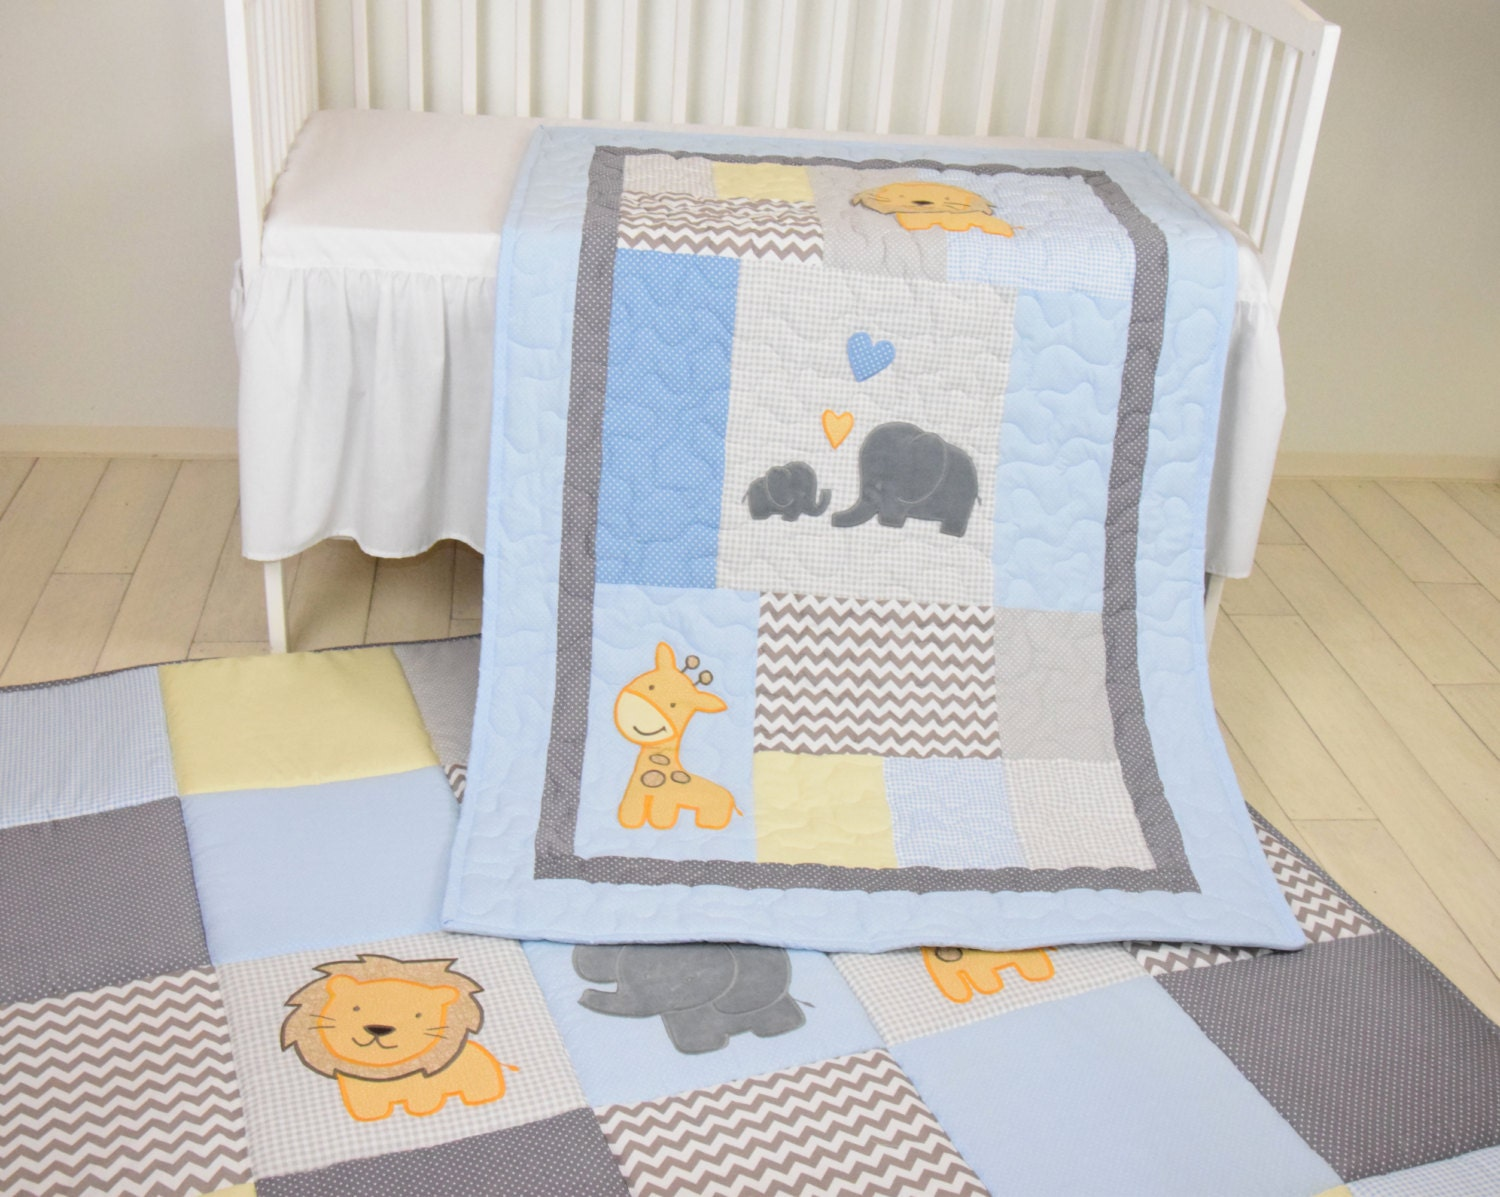 Baby Blue Blanket Elephant Boy Quilt Crib Safari Bedding